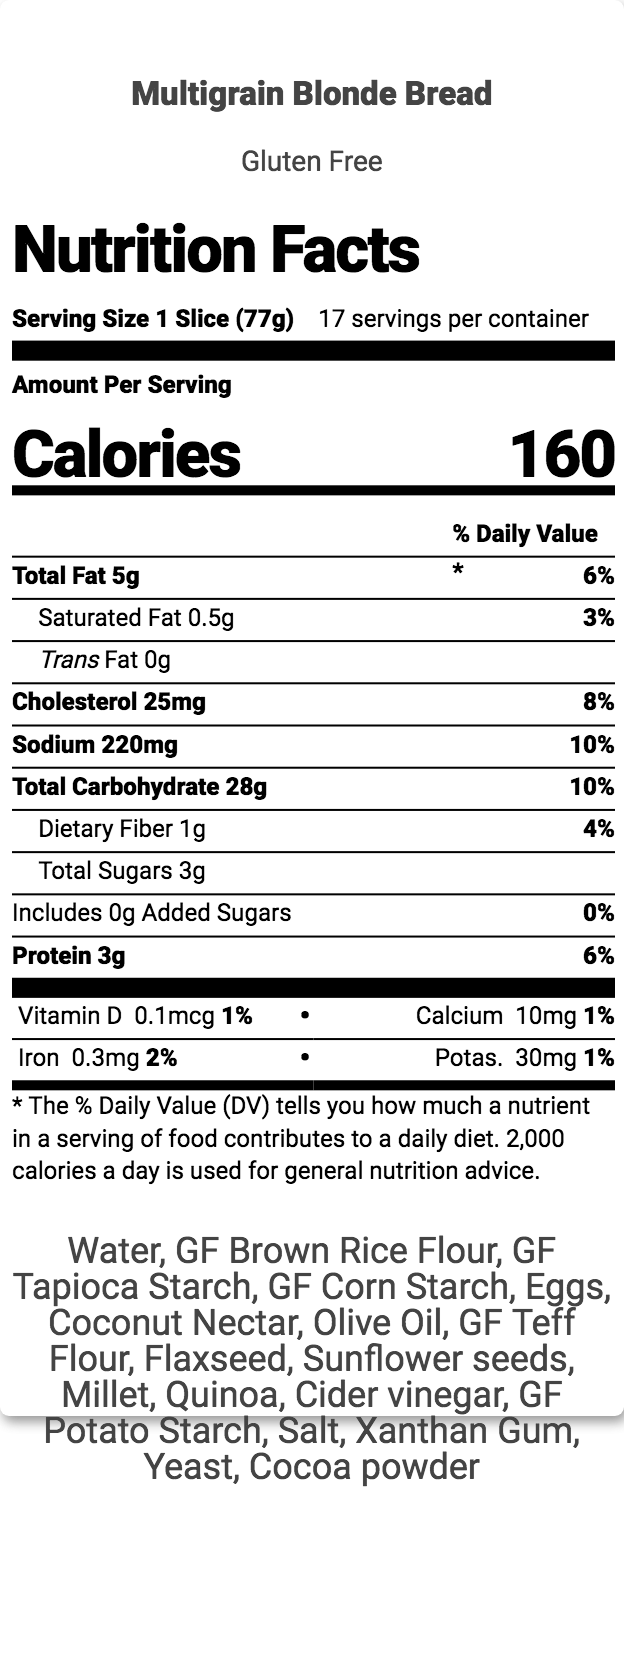 Gluten Free Multi Grain Bread Nutrition